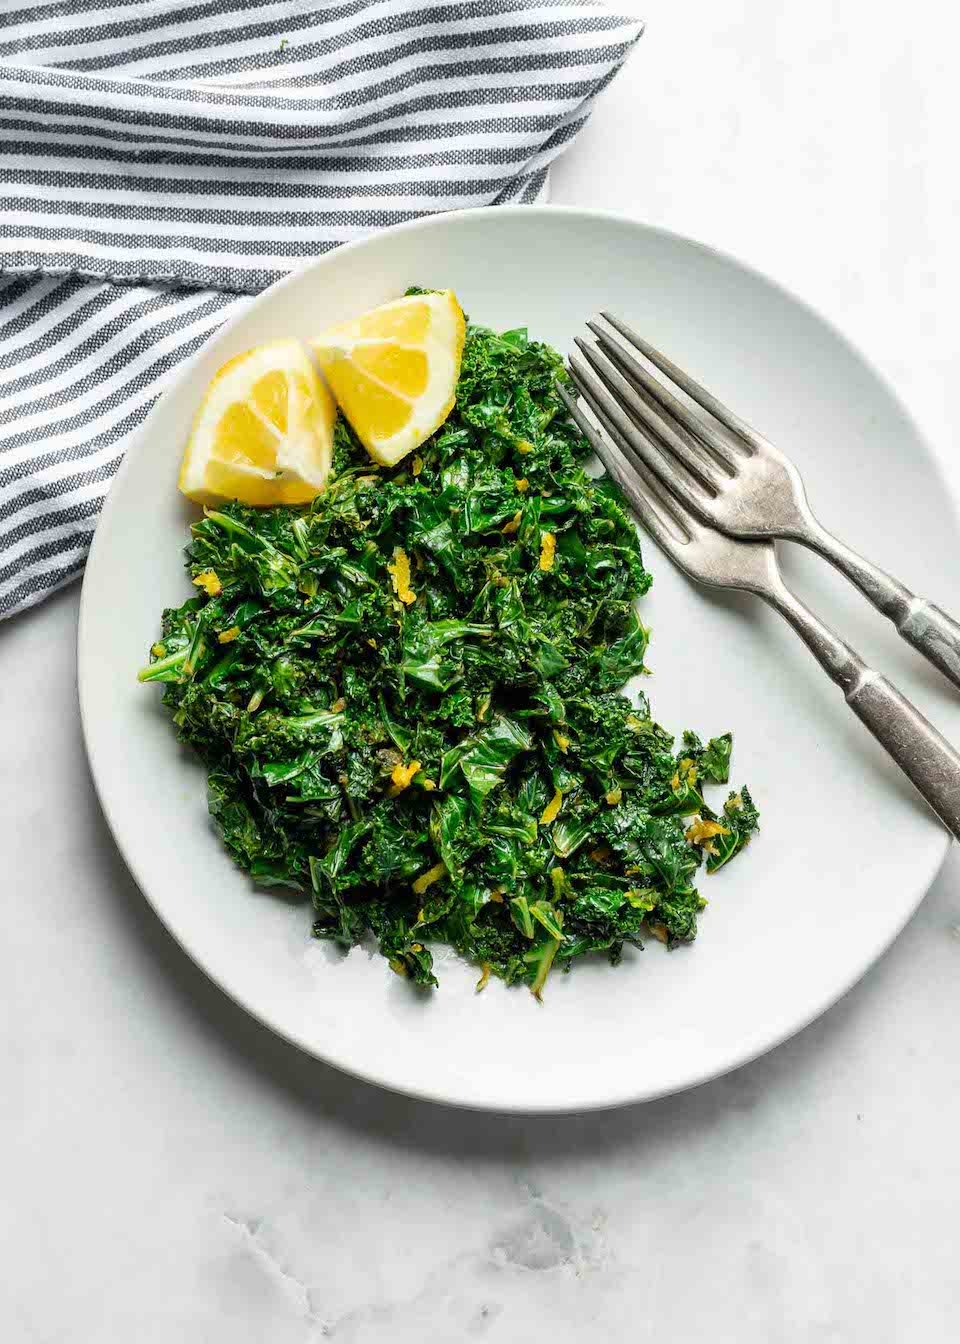 Lemon Garlic Greens